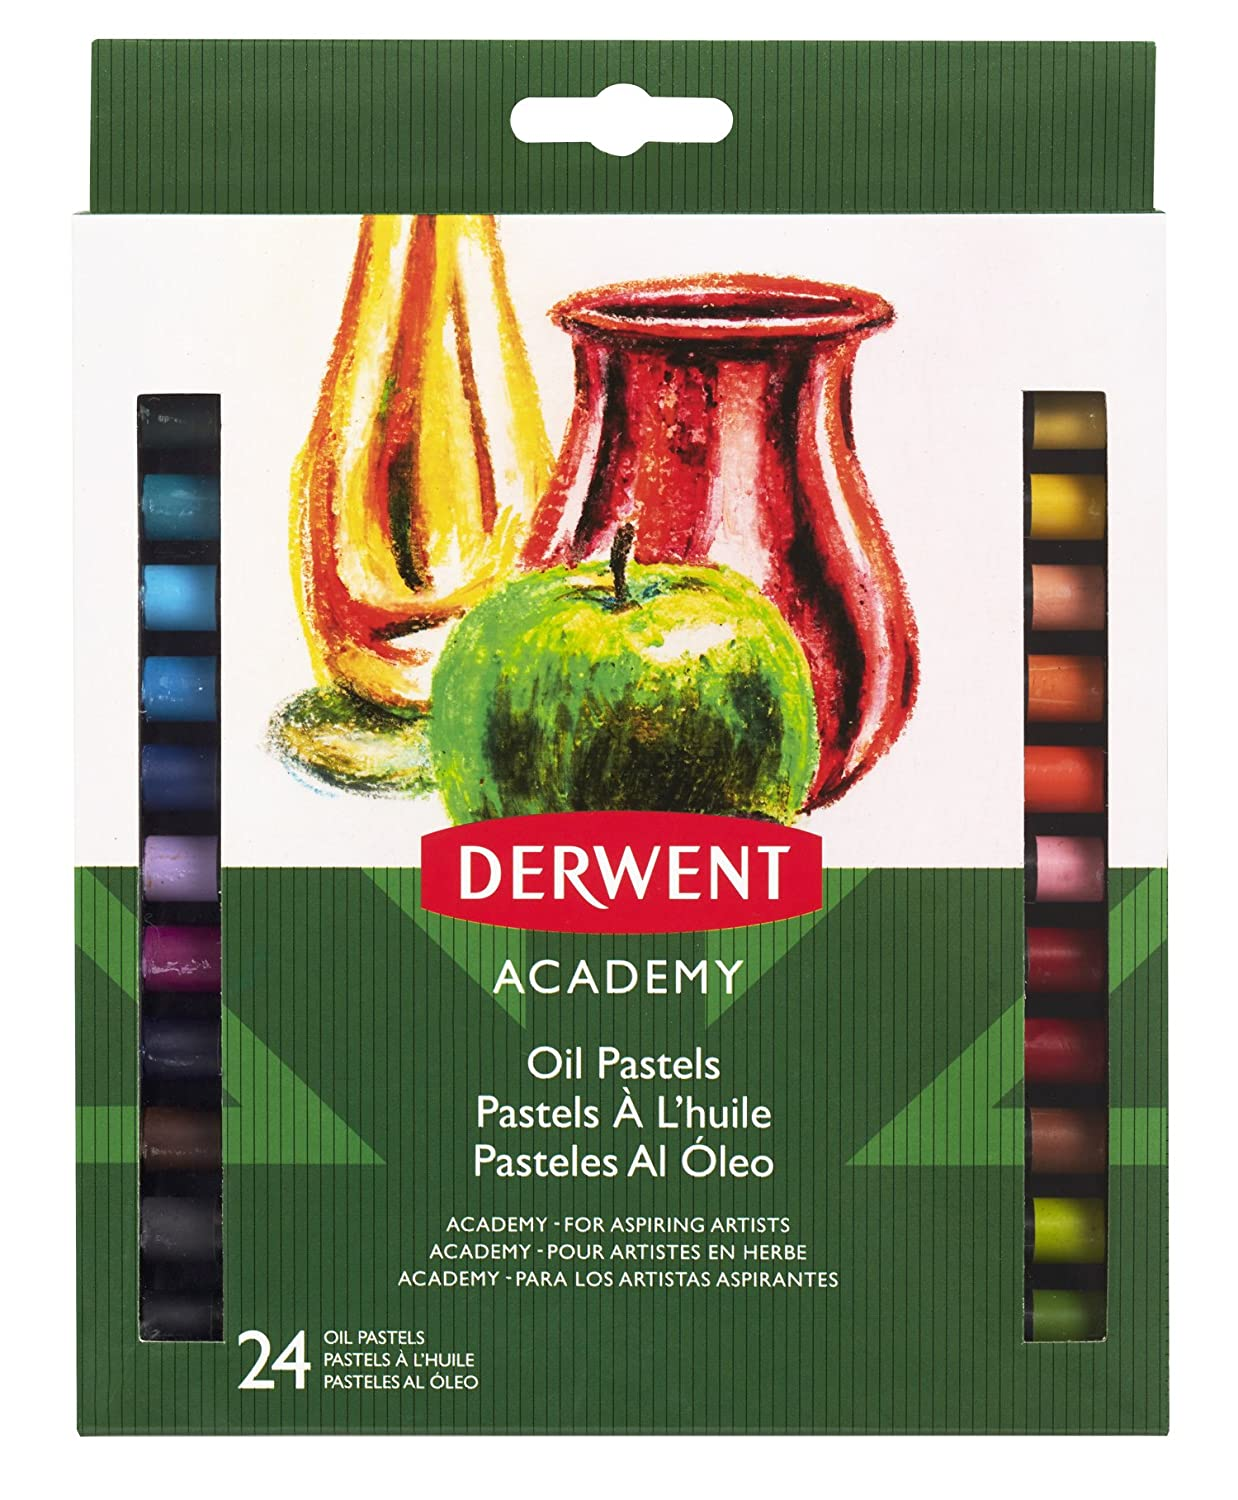 Derwent Academy Oil Pastels, Set of 24, High Quality, 2301953